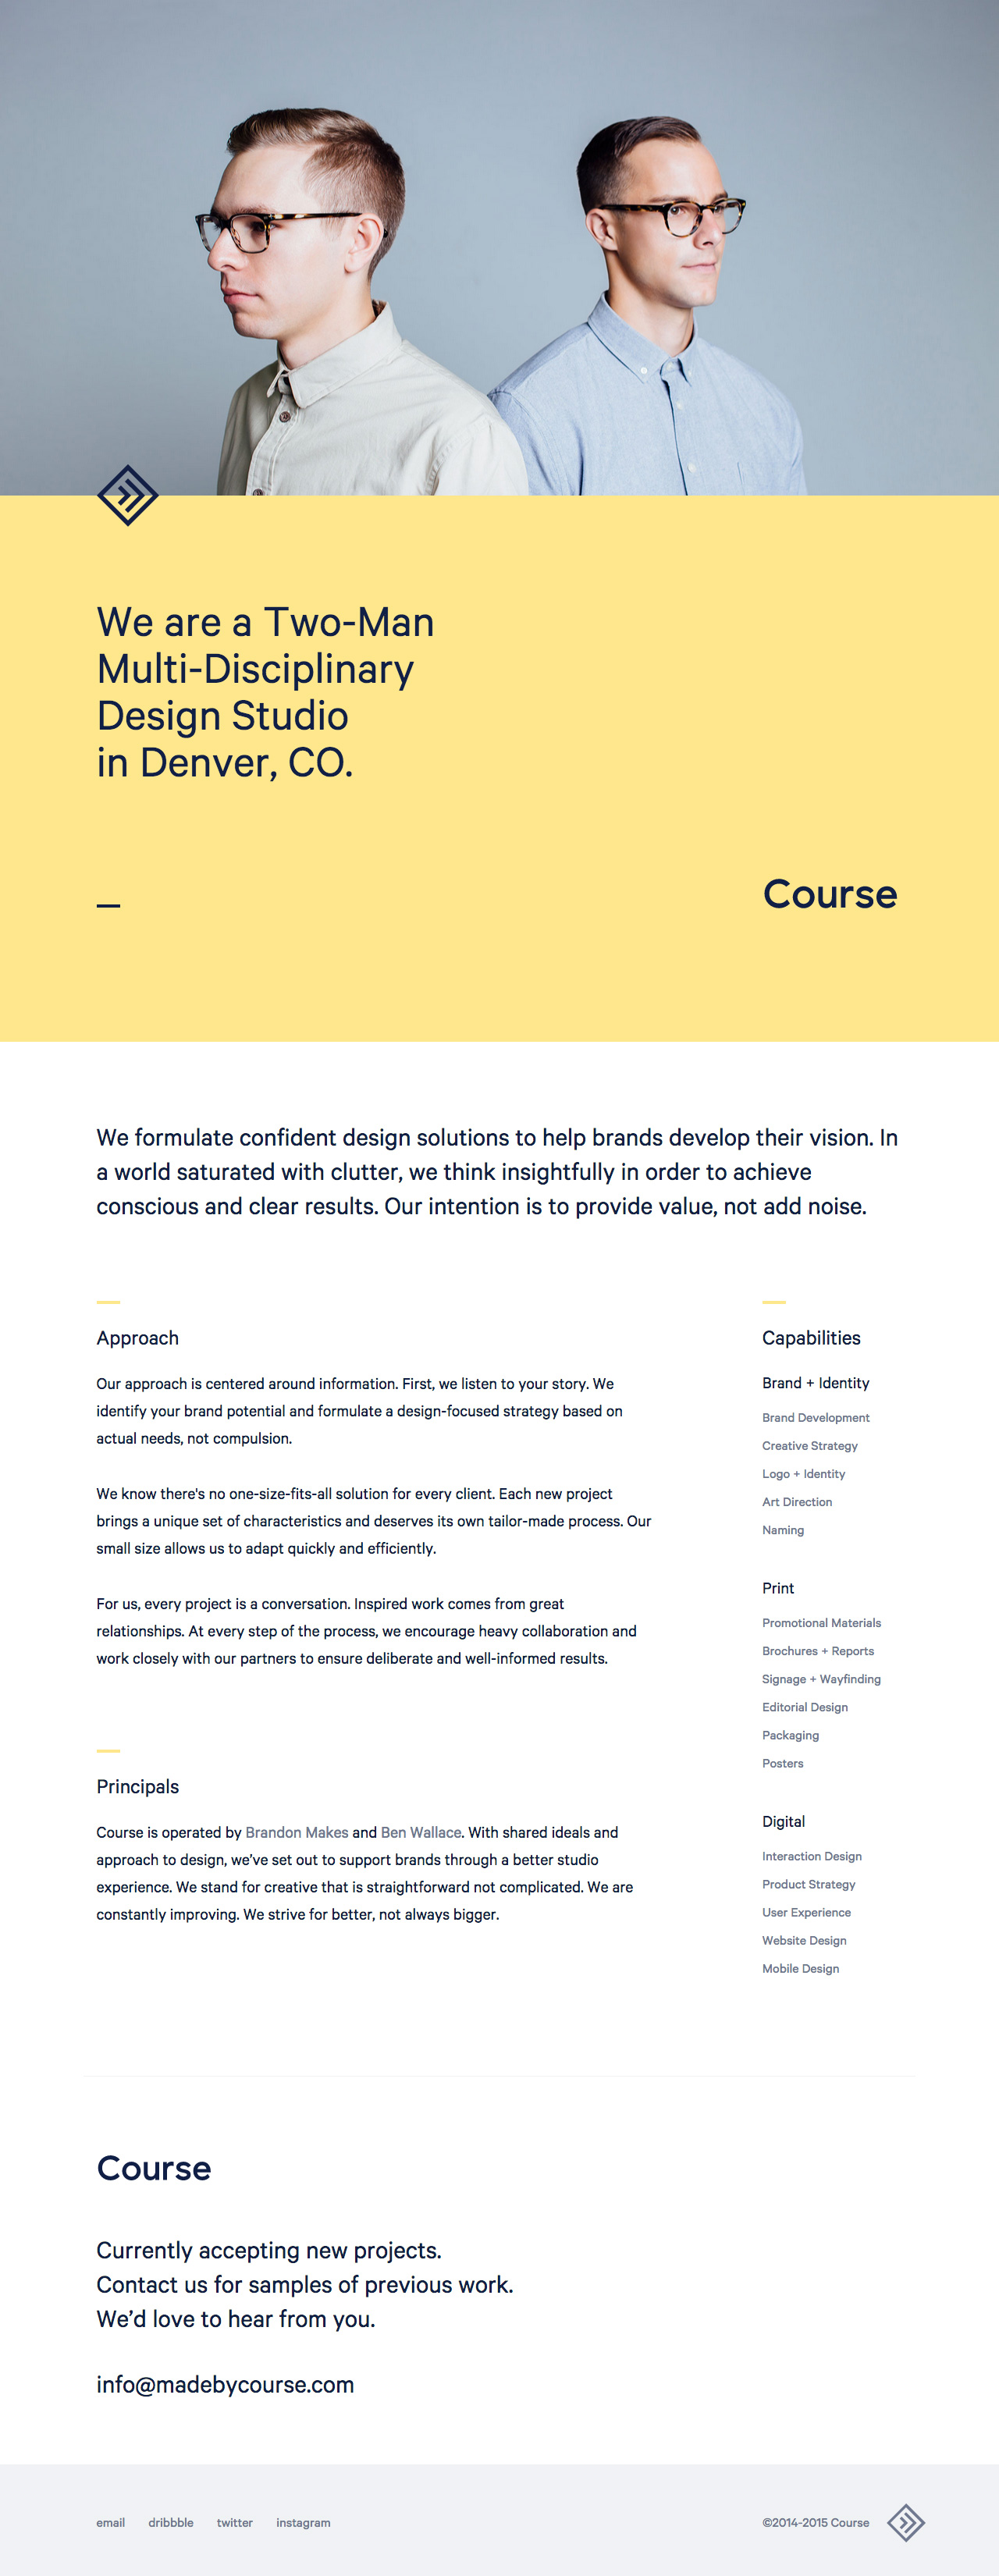 Course Website Screenshot